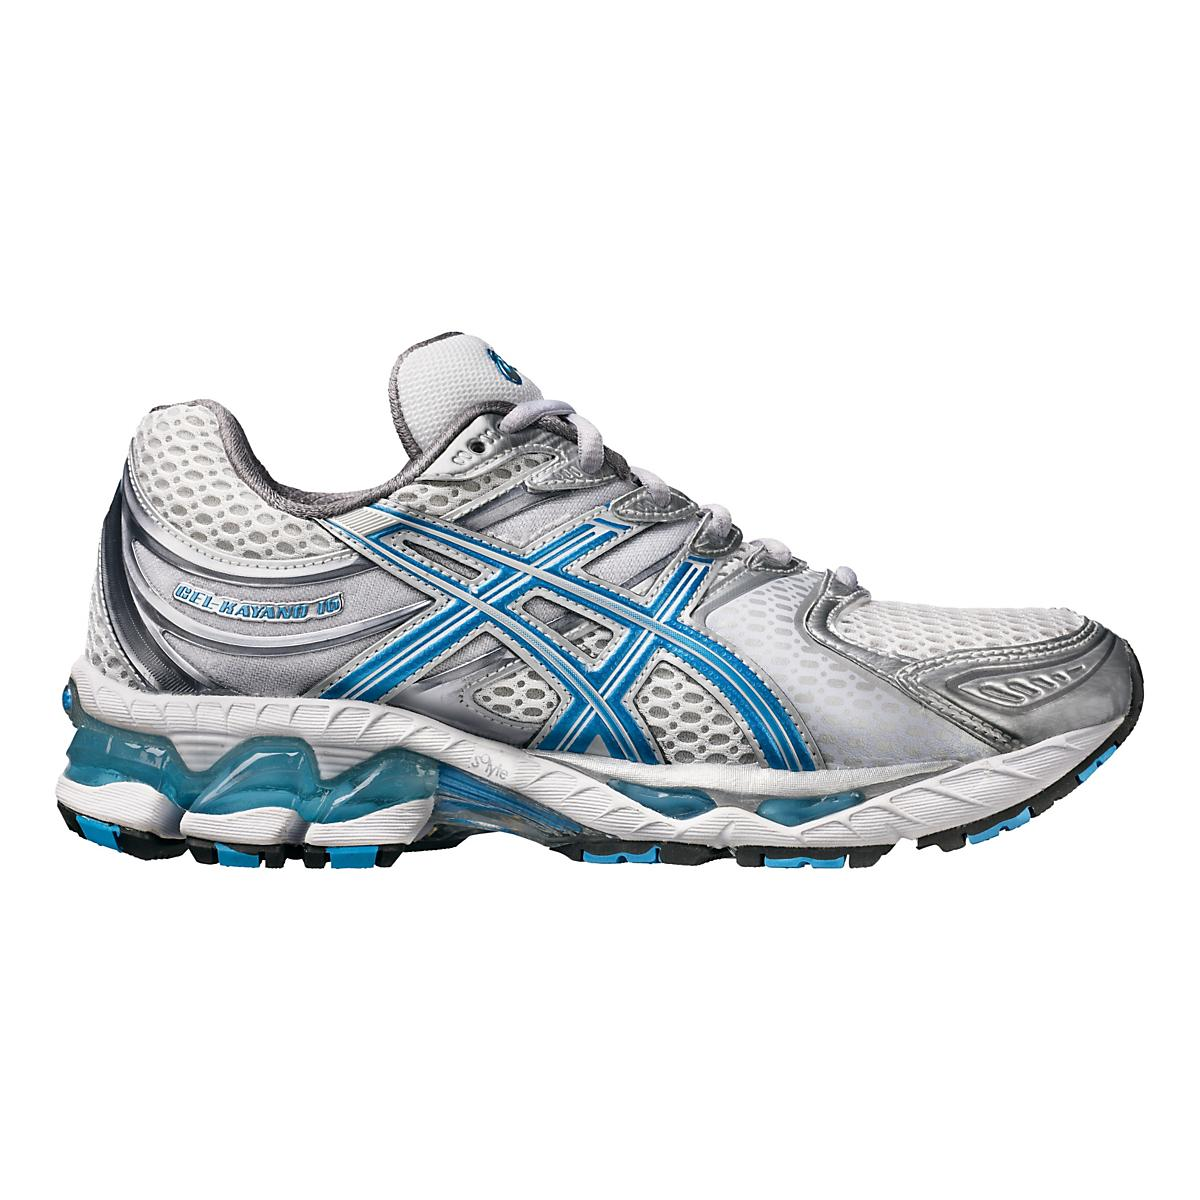 new release best deals on quality Women's GEL-Kayano 16 Classic